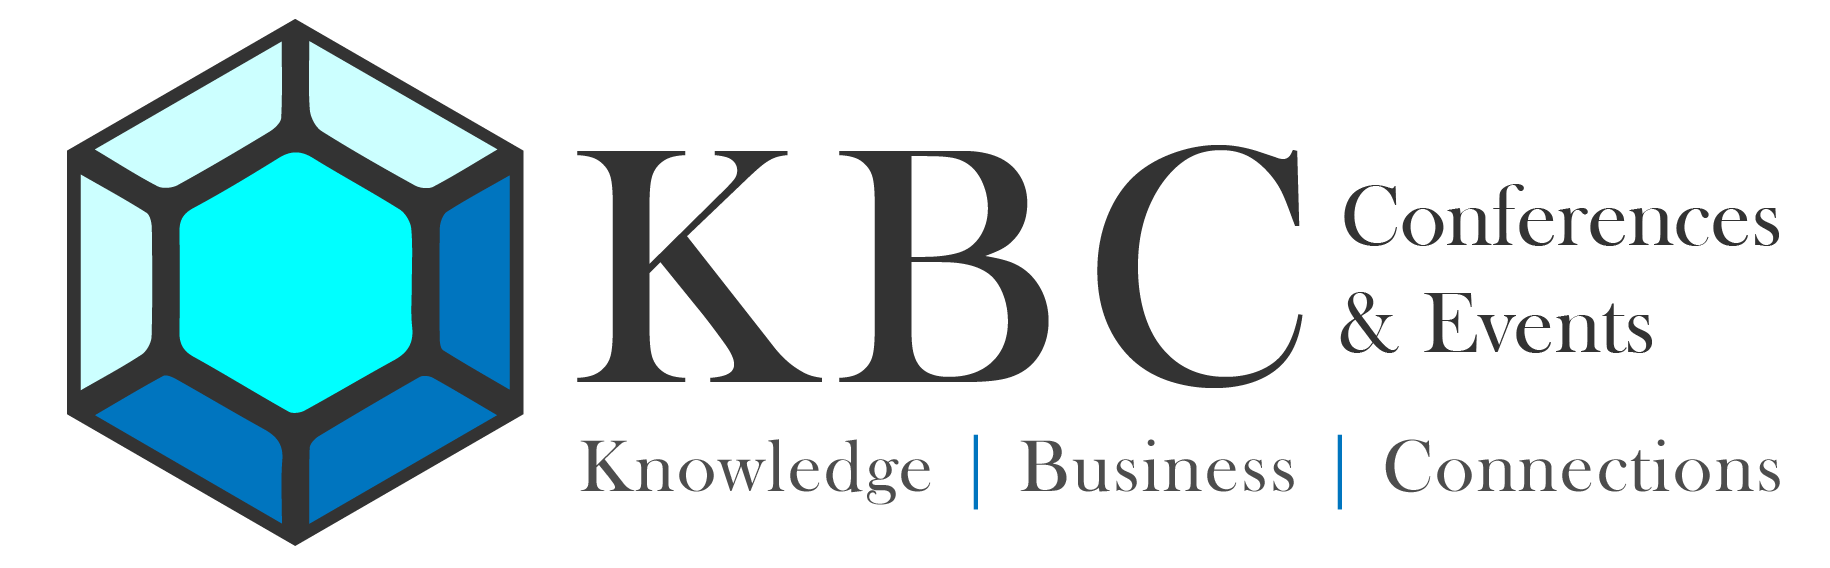 KBC Conferences and Events